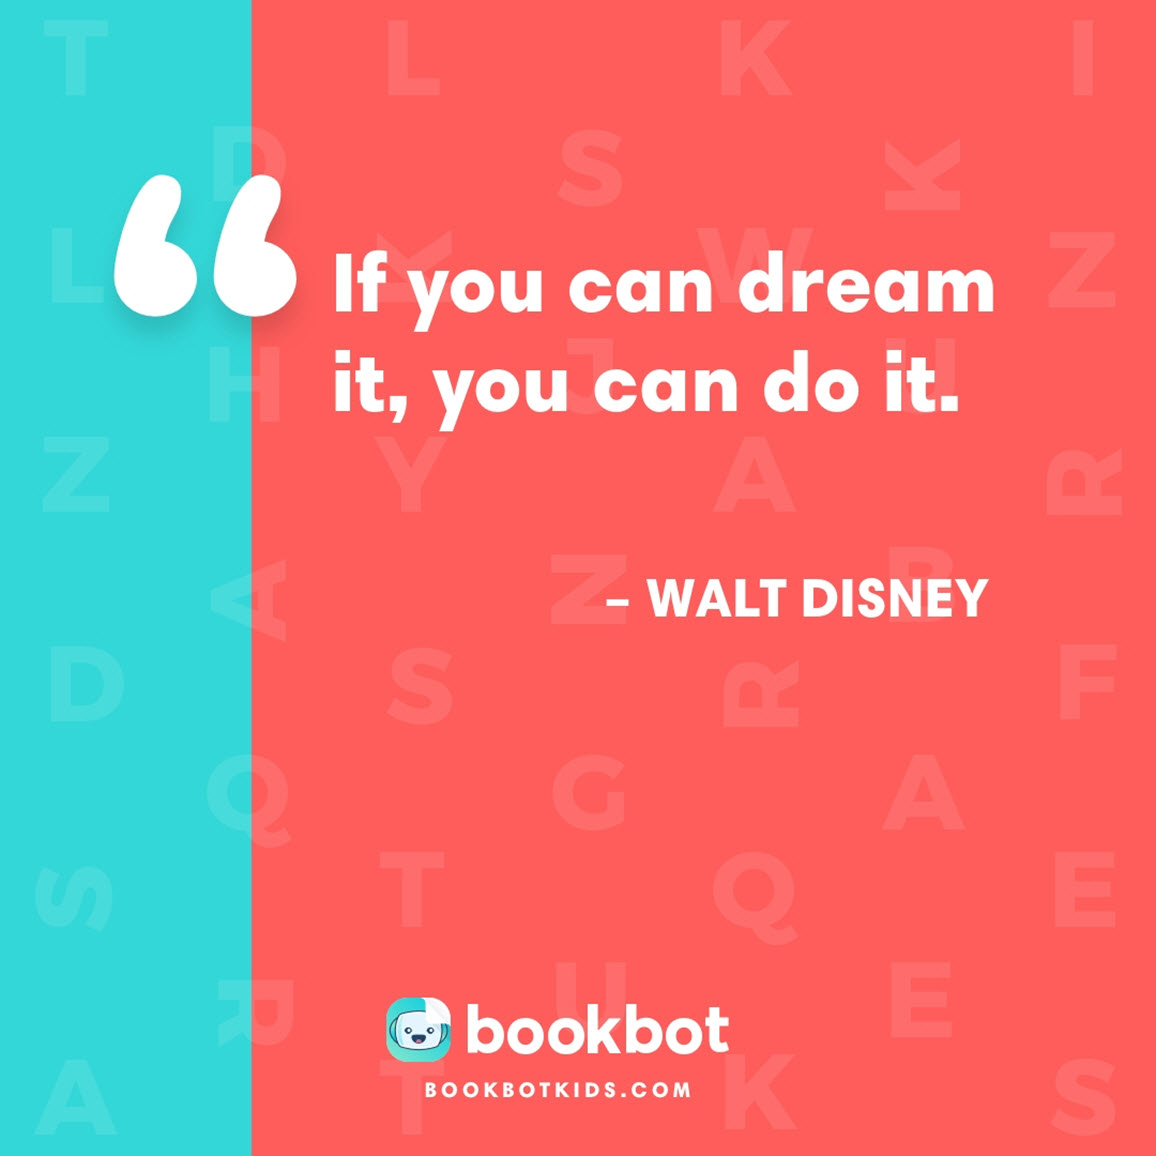 If you can dream it, you can do it. – Walt Disney